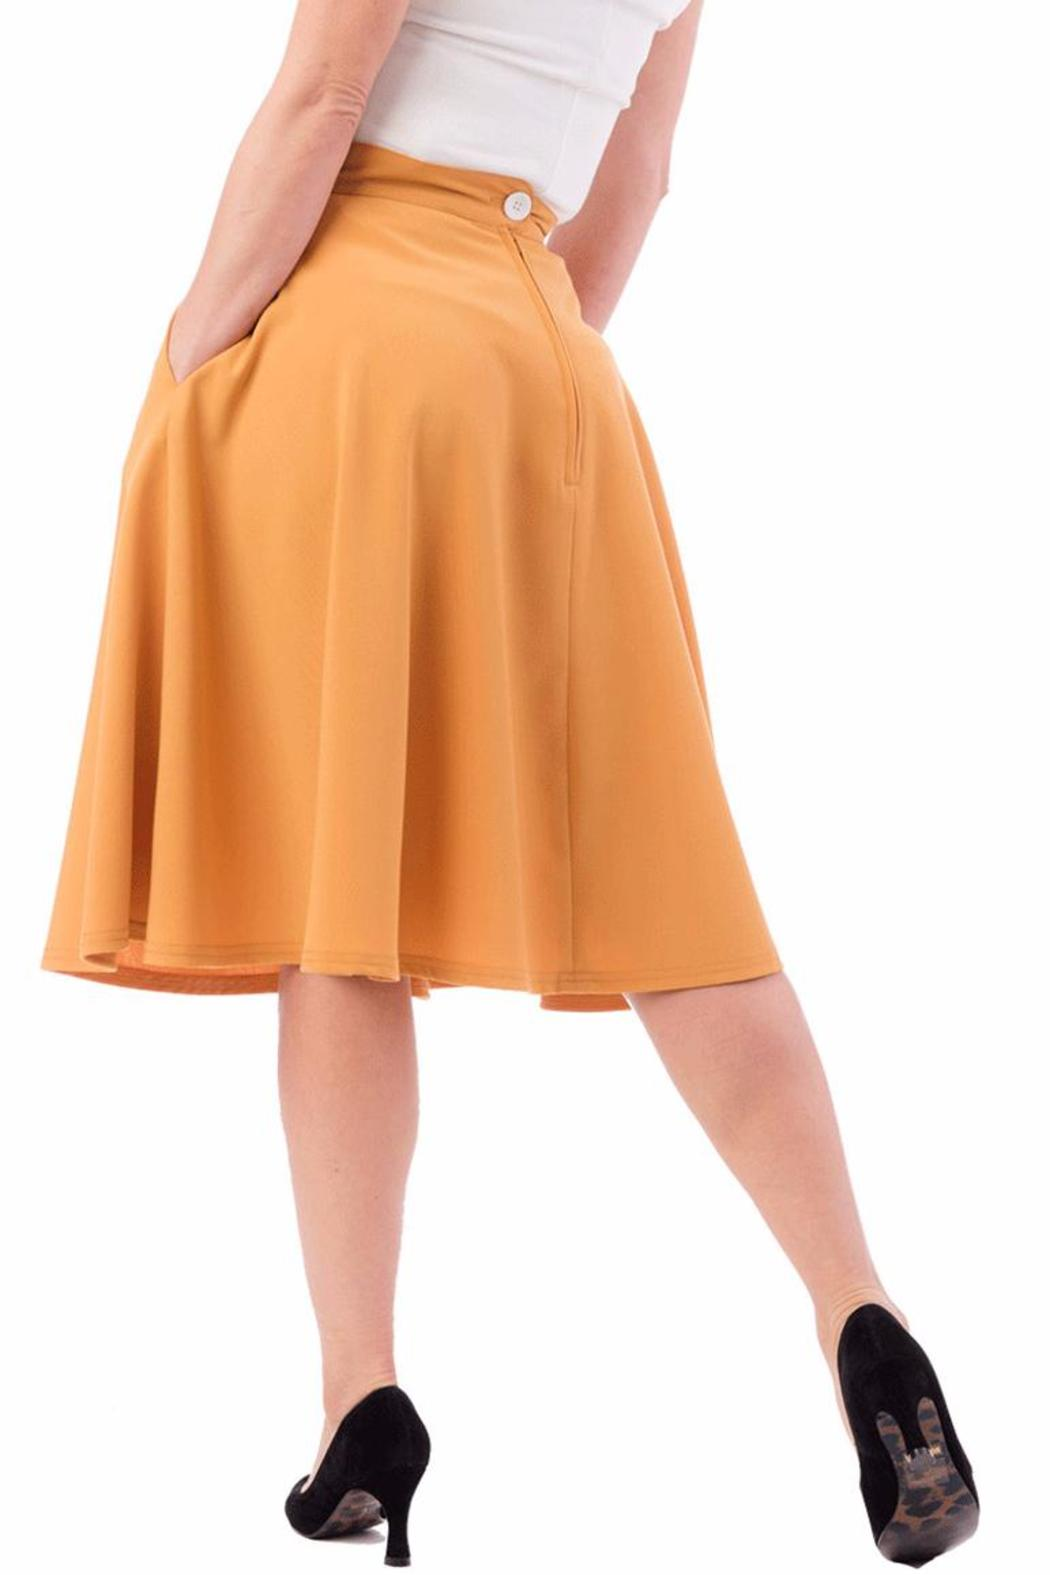 Steady Clothing High-Waist Circle Skirt - Front Full Image